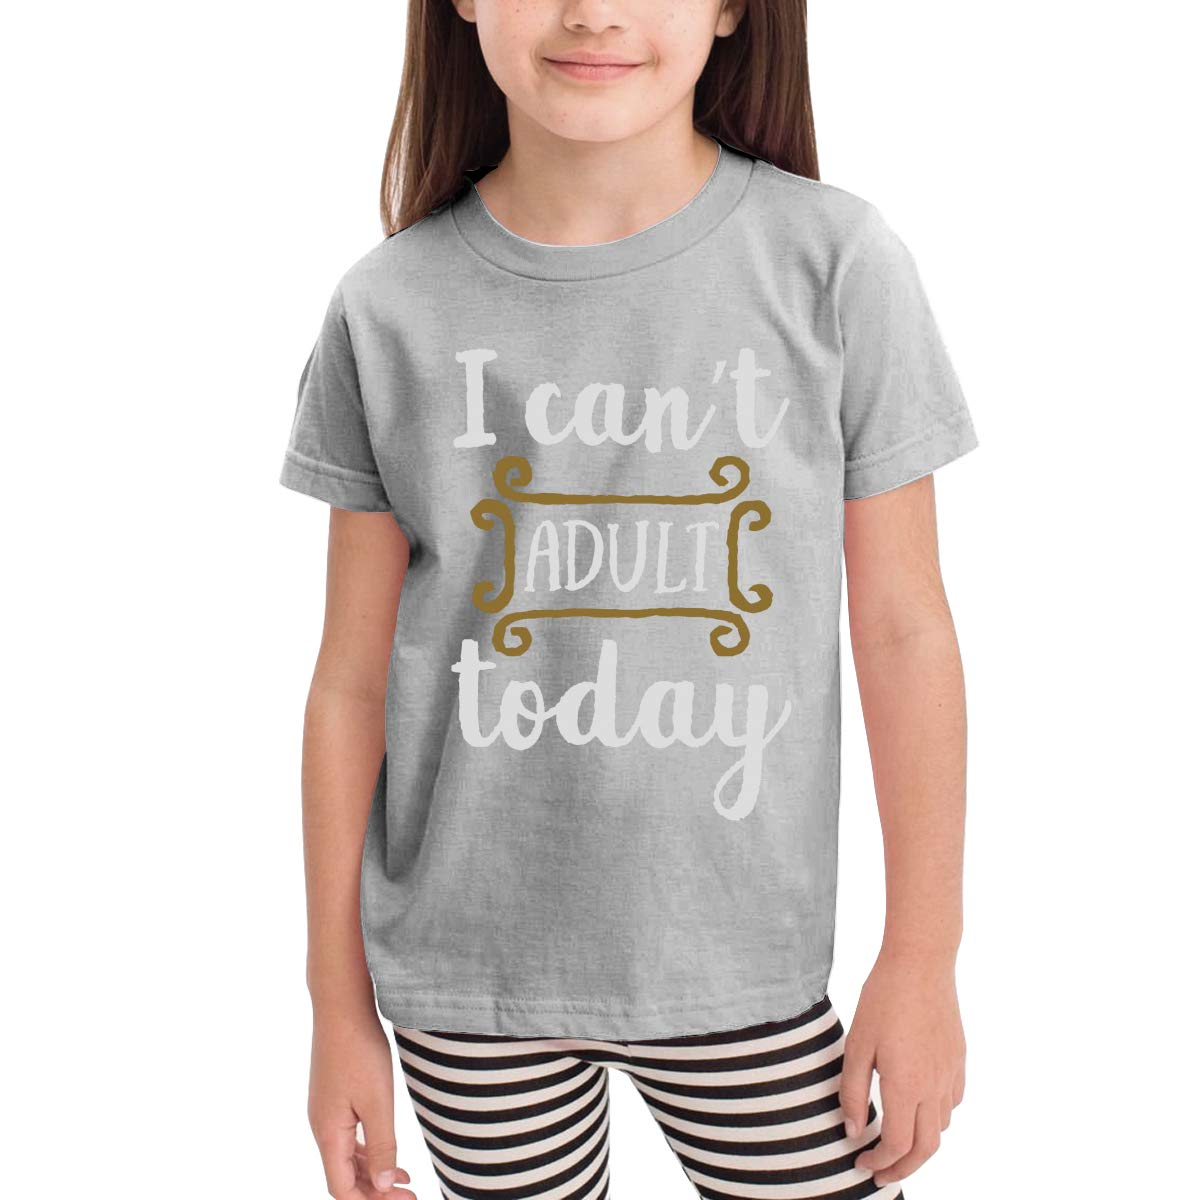 I Cant Adult Today Childrens Cotton Gray Short Sleeve Girls Tee Shirt